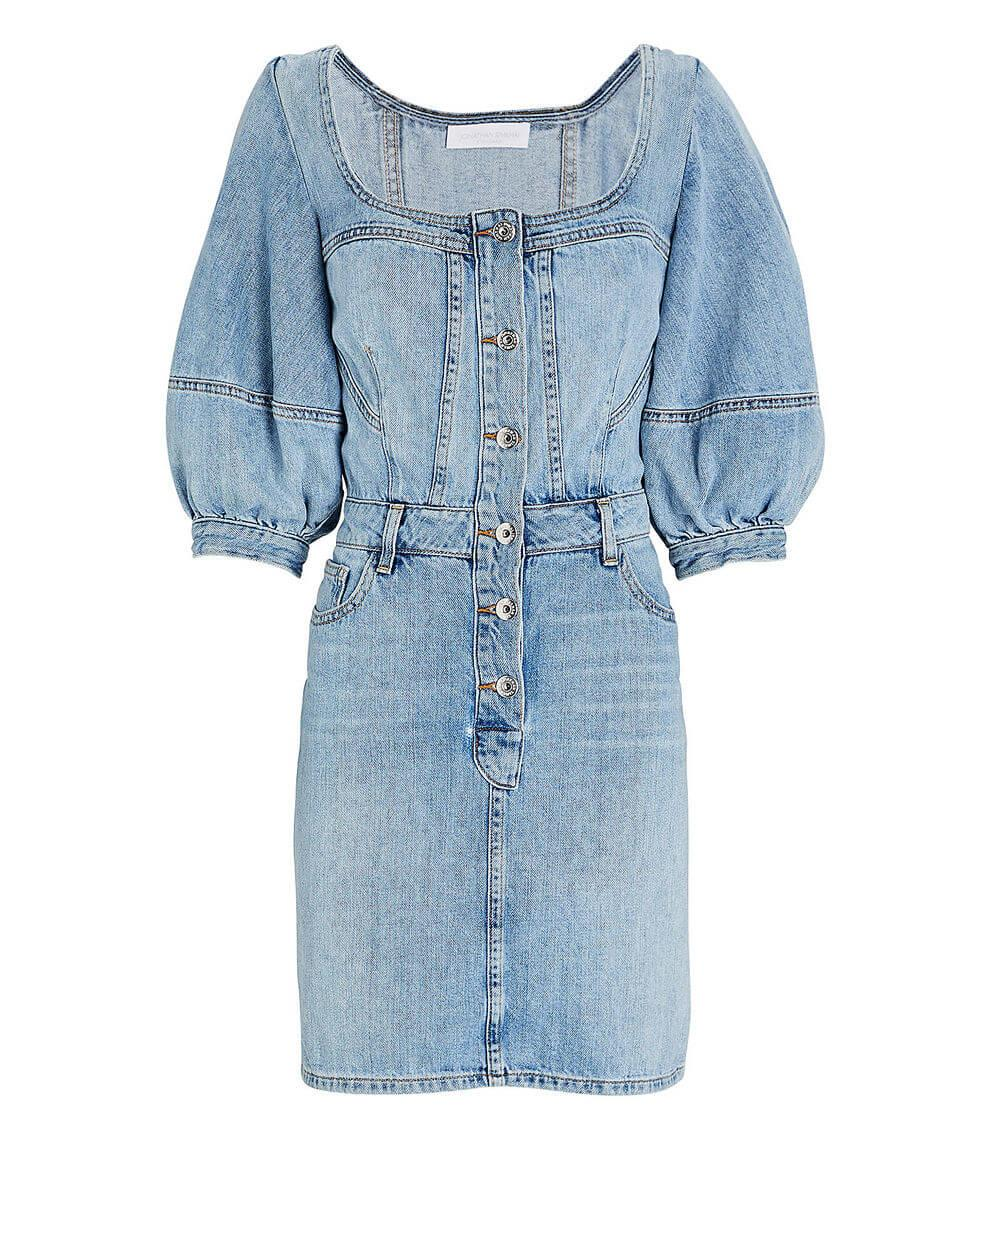 Poppy Puff Sleeve Denim Dress